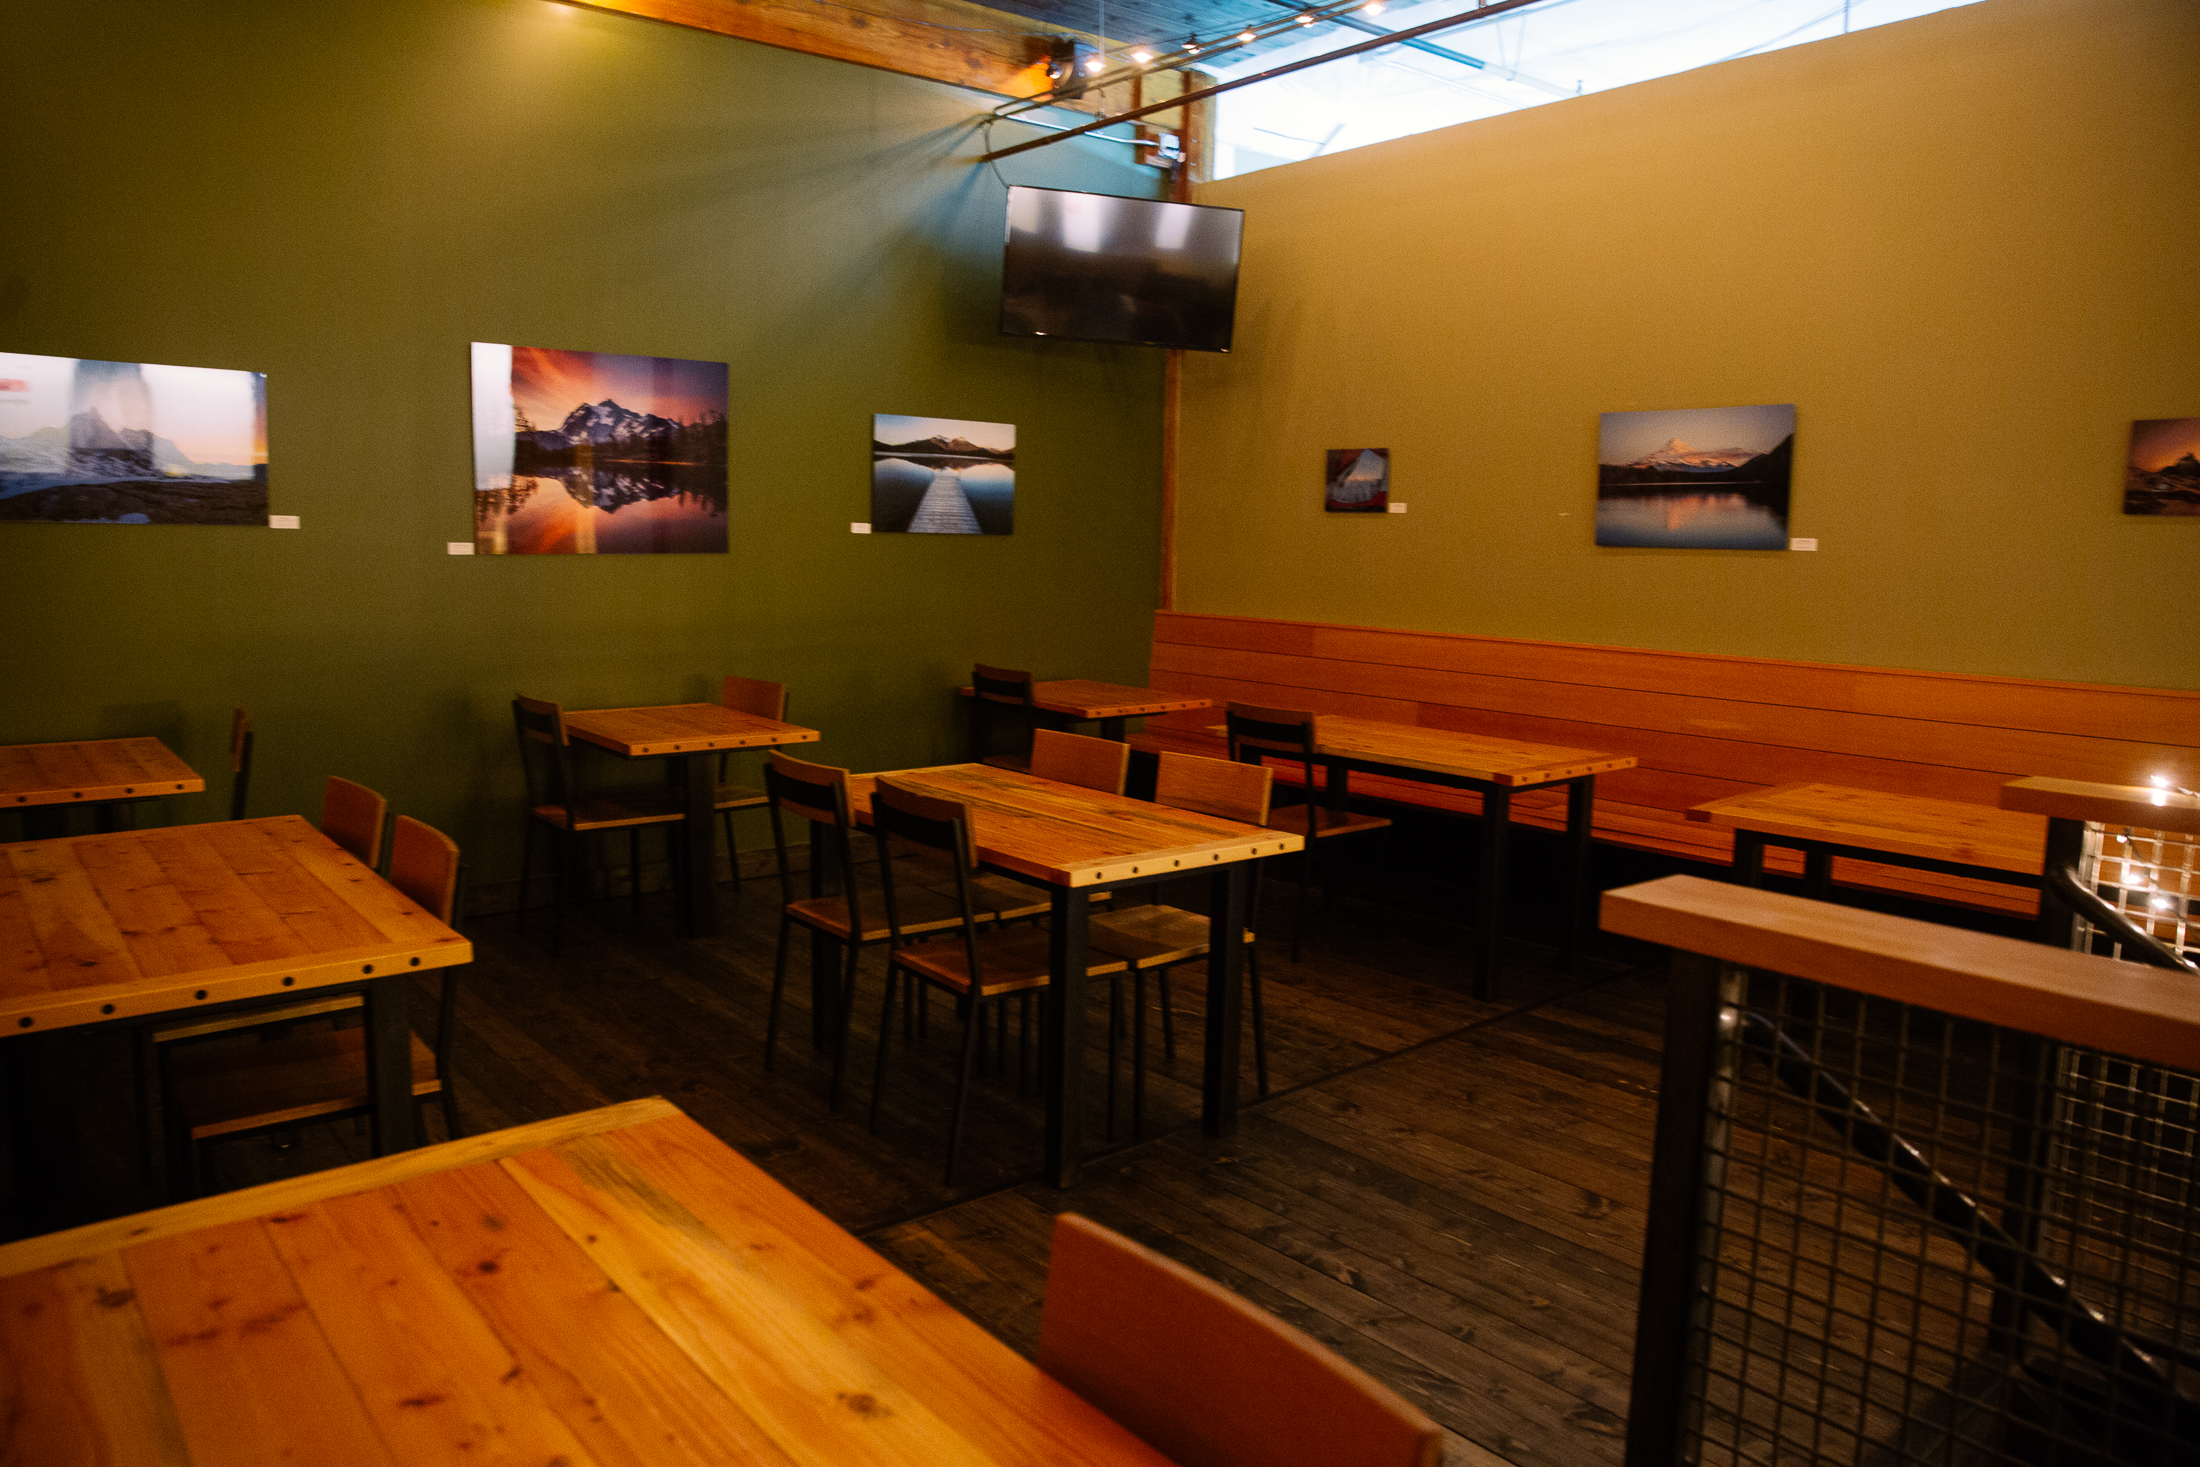 Located within the The Woods, home of Two Beers Brewing and Seattle Cider Co., Bread and Circuses have opened their first brick and mortar restaurant. You may have seen Bread and Circuses' food truck around town, but now they serving their unique gastropub eats and pairing them with some of the best cider and beer in town. They are located at 4660 Ohio Ave S. Seattle, WA and are opening Tuesday through Sunday. You can find out their hours and see a sample menu at http://www.eatbreadandcircuses.com. (Image: Joshua Lewis / Seattle Refined)